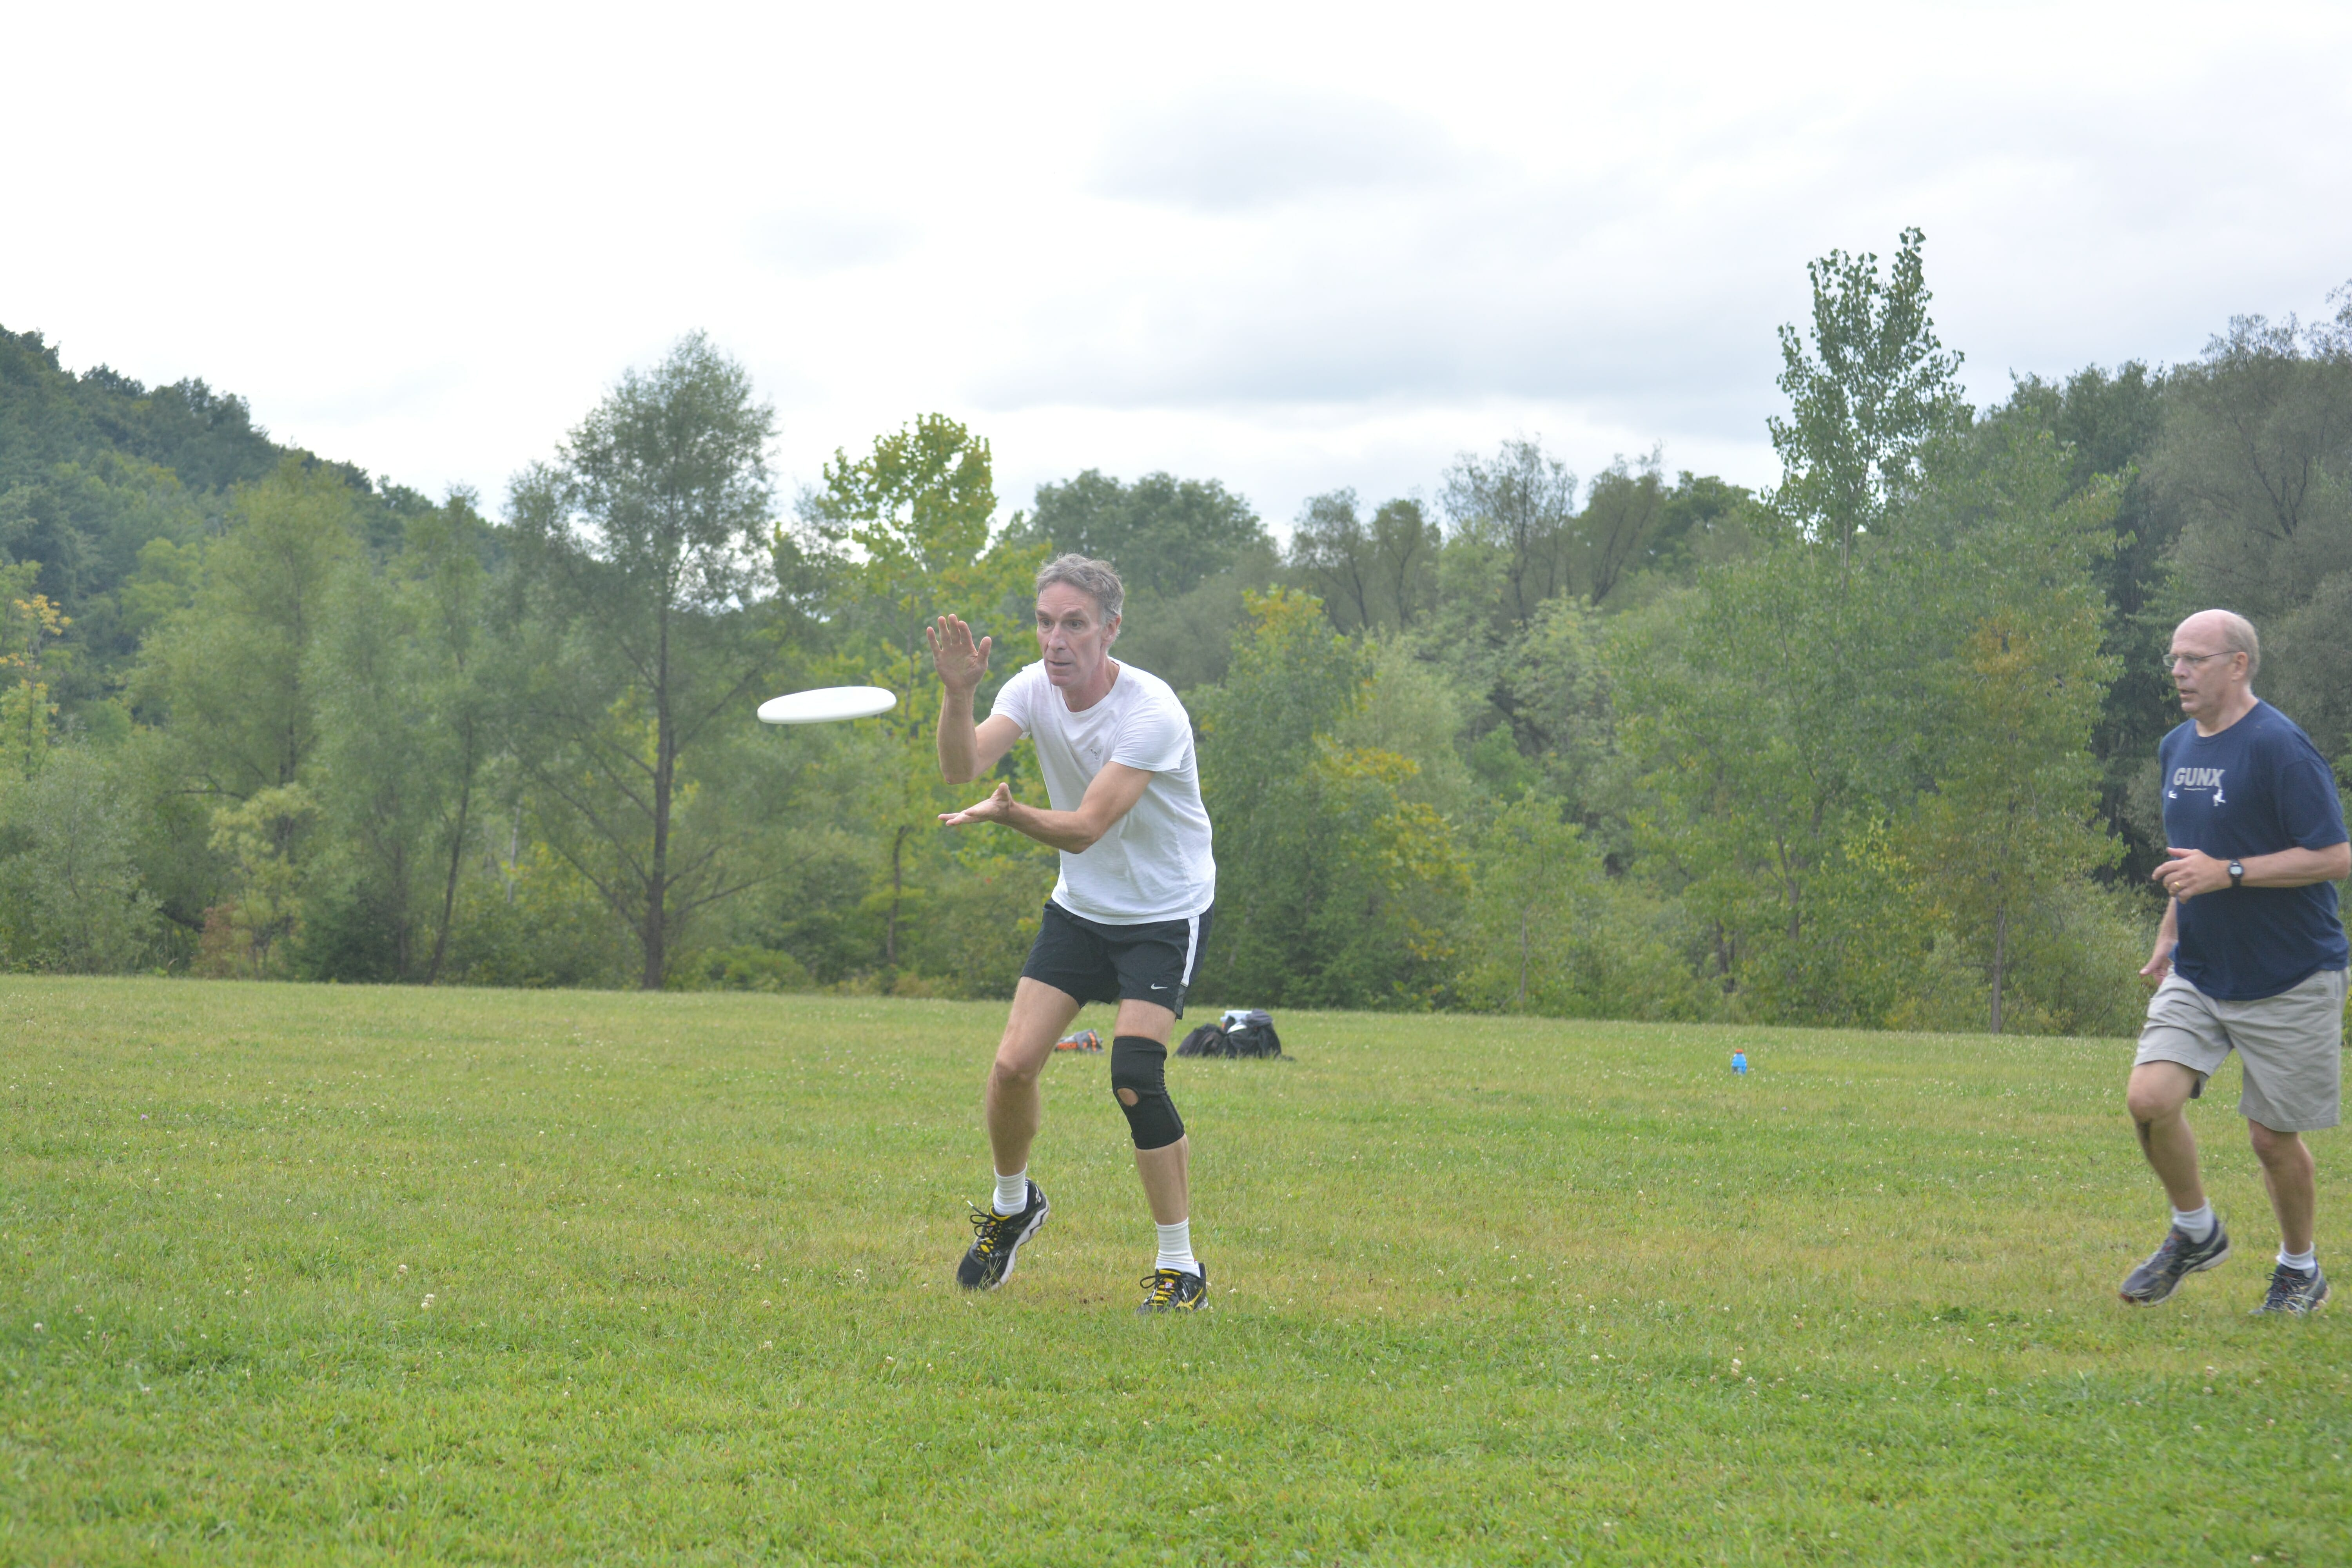 Bill Nye The Science Guy catching a disc in an ultimate game.